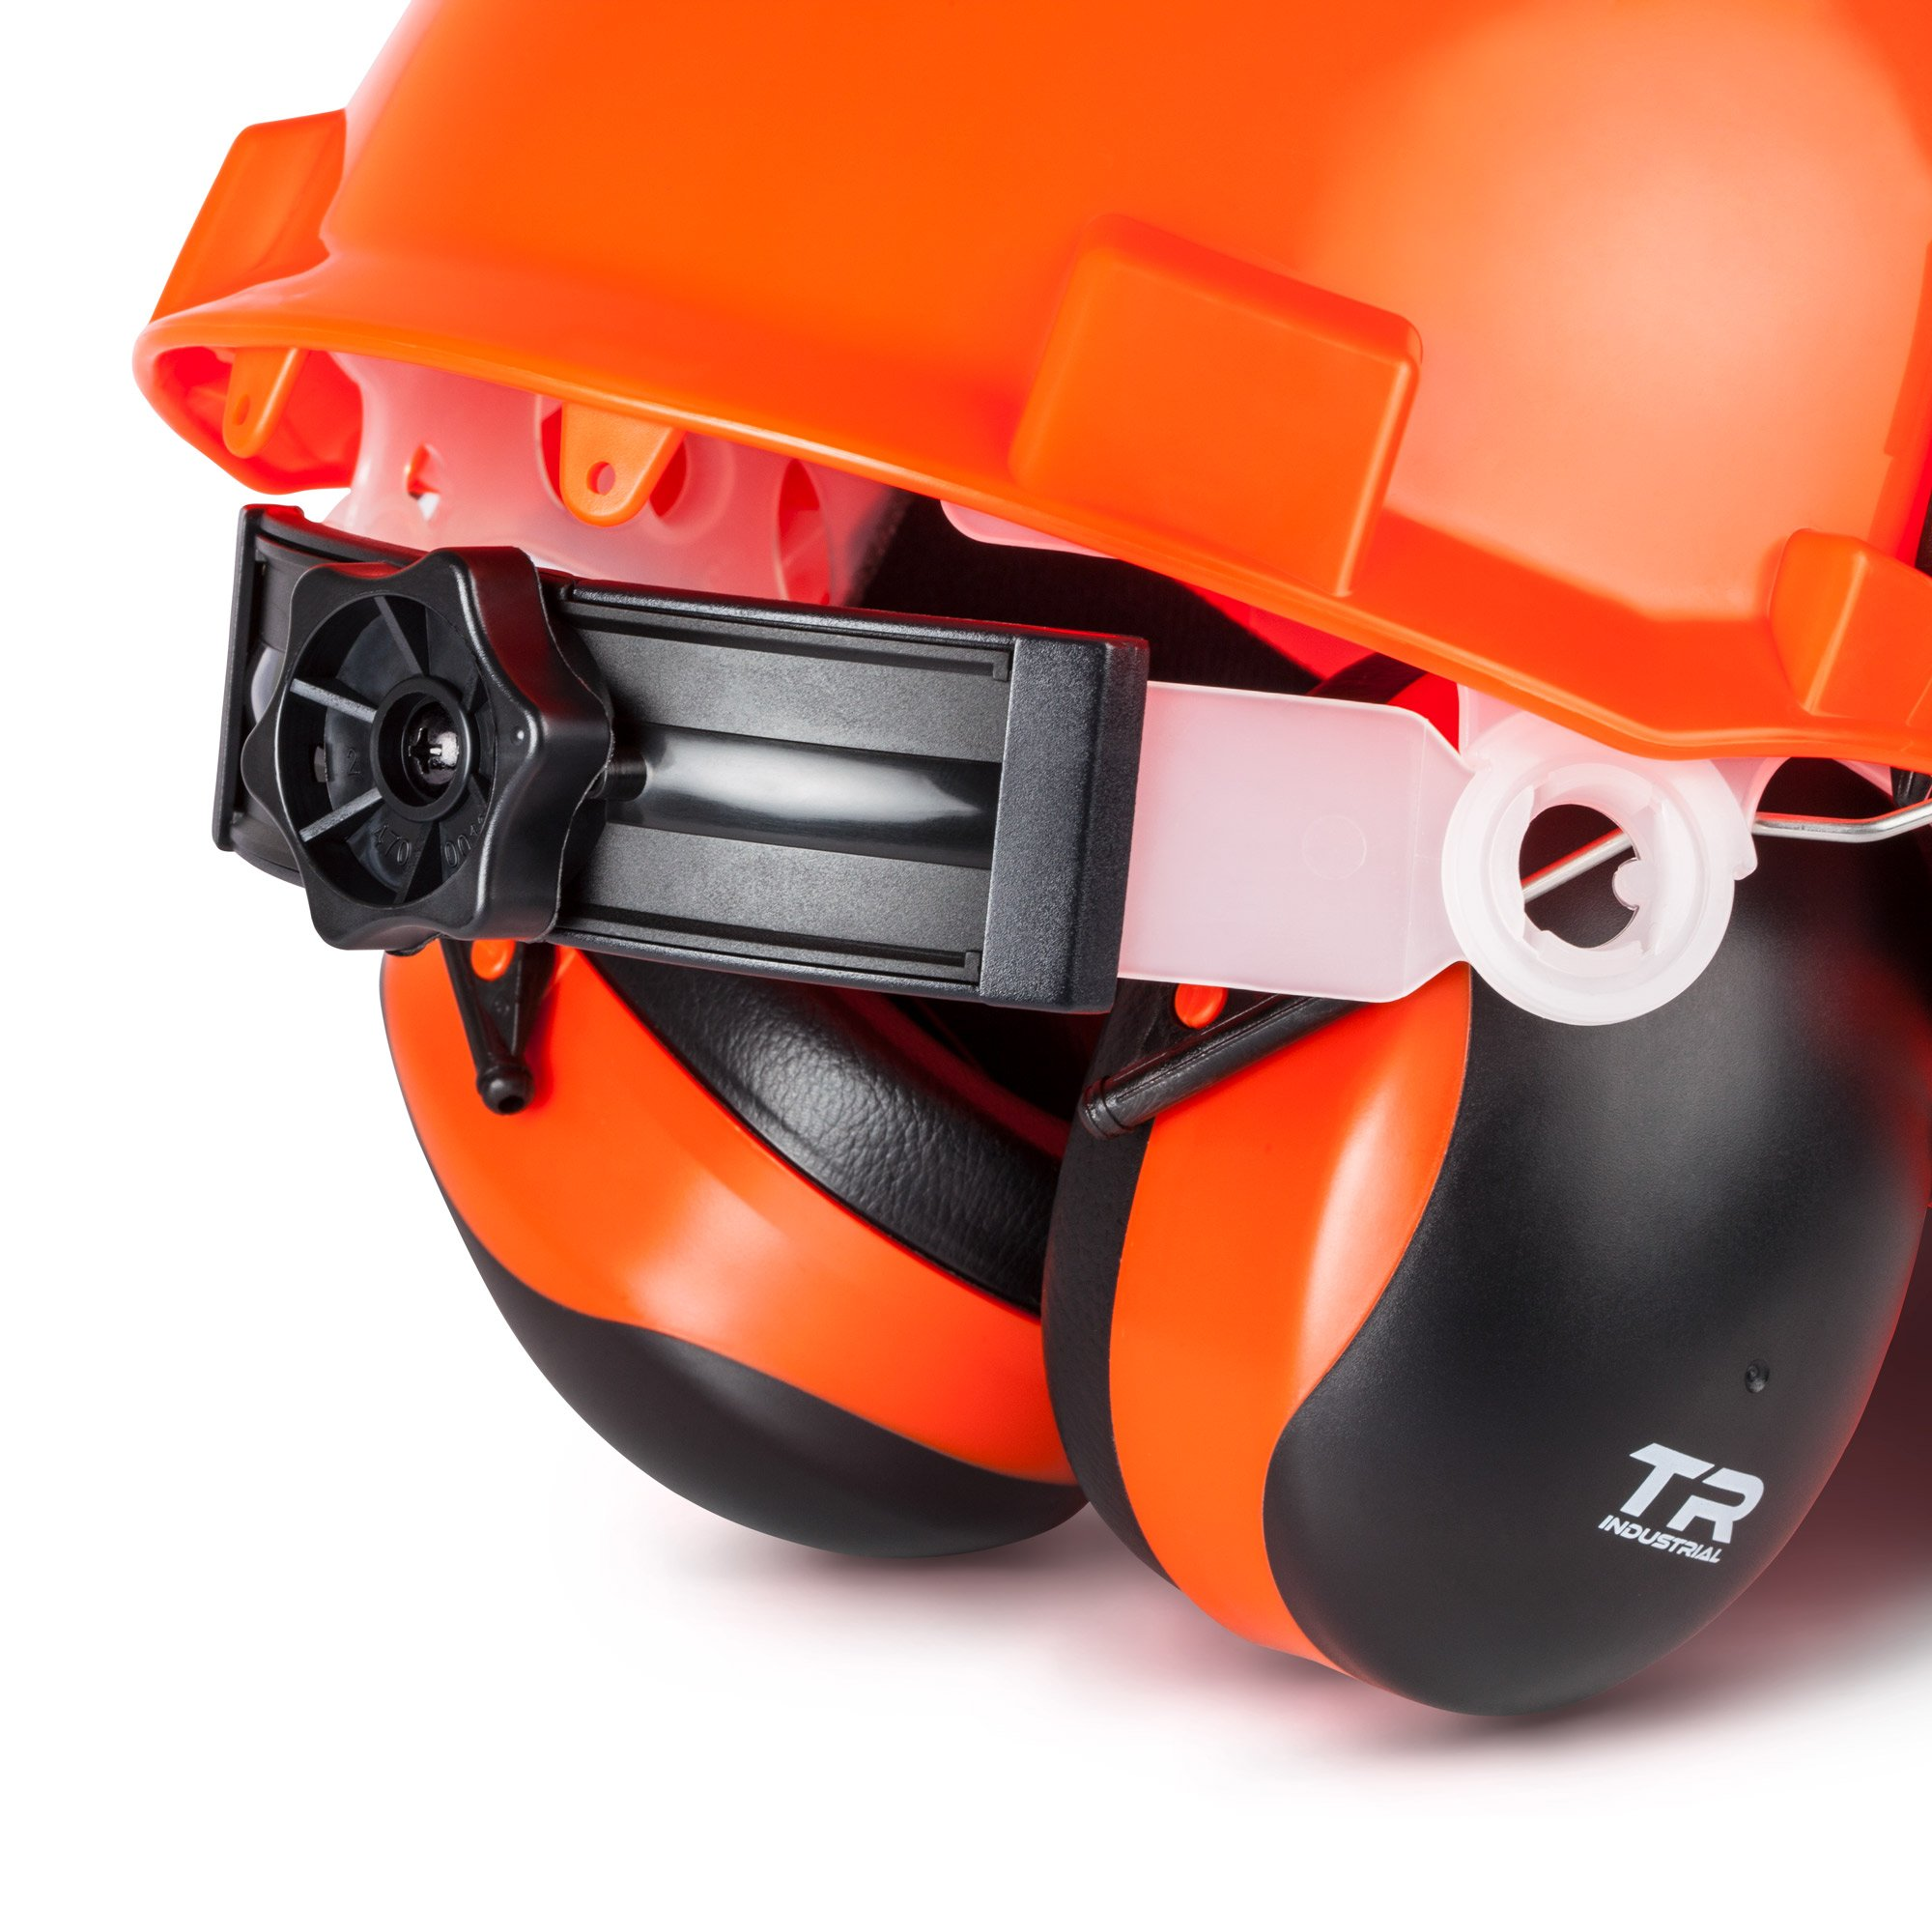 TR Industrial Forestry Safety Helmet and Hearing Protection System by TR Industrial (Image #4)